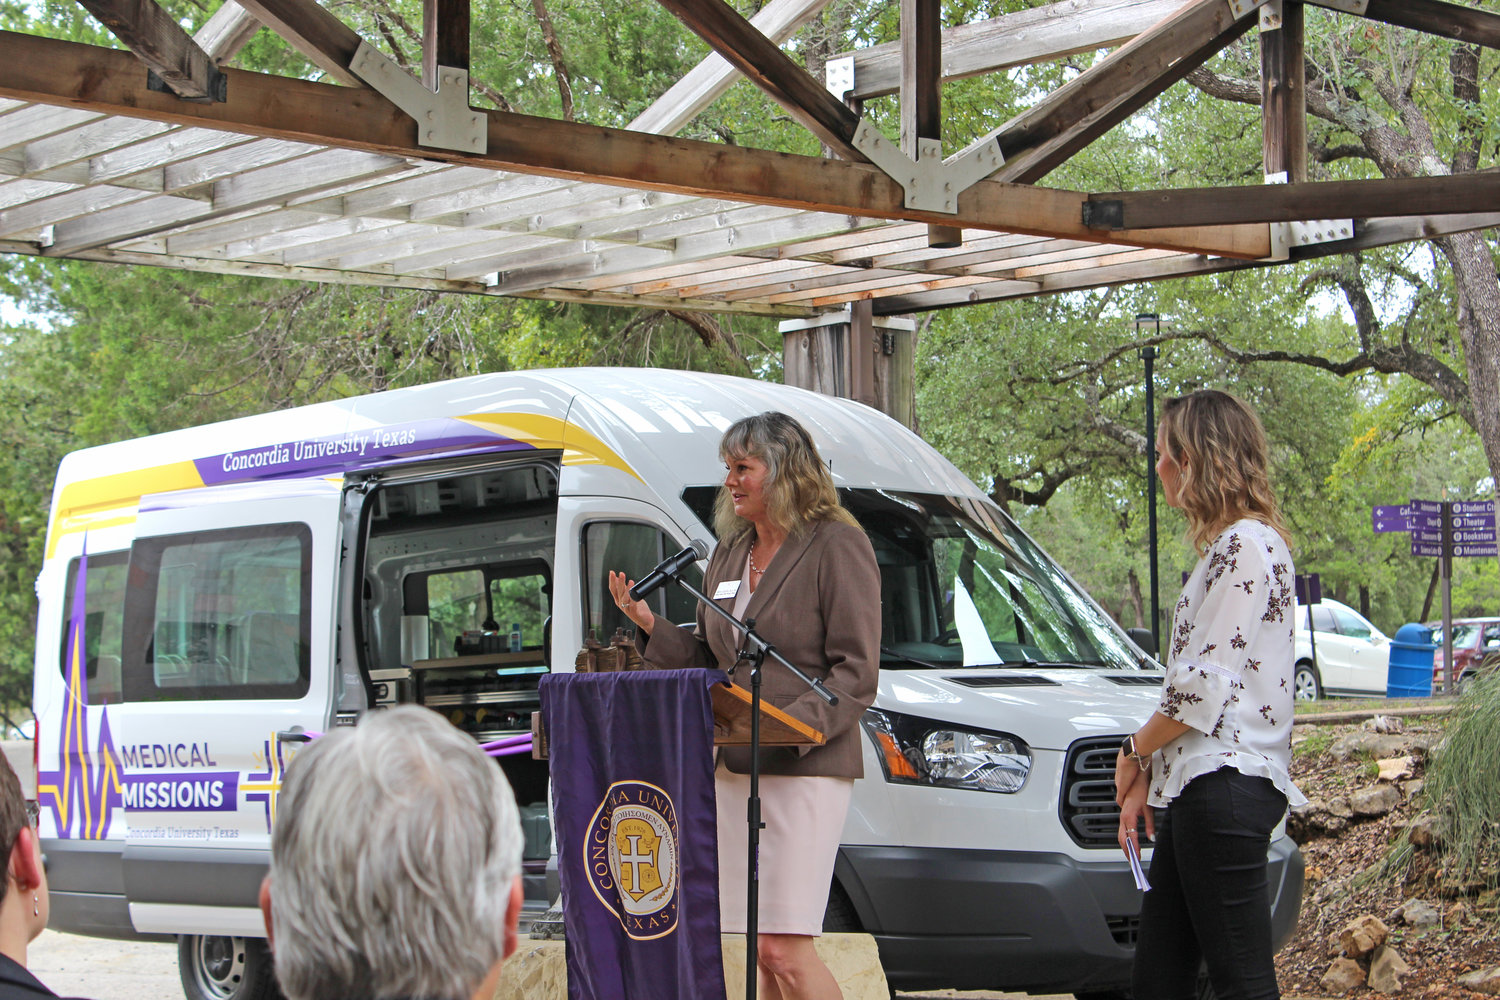 Dr. Greta Degan commemorates Concordia University's new nursing van as former student Caitlin Rowlette looks on at a dedication ceremony held on Sept. 28